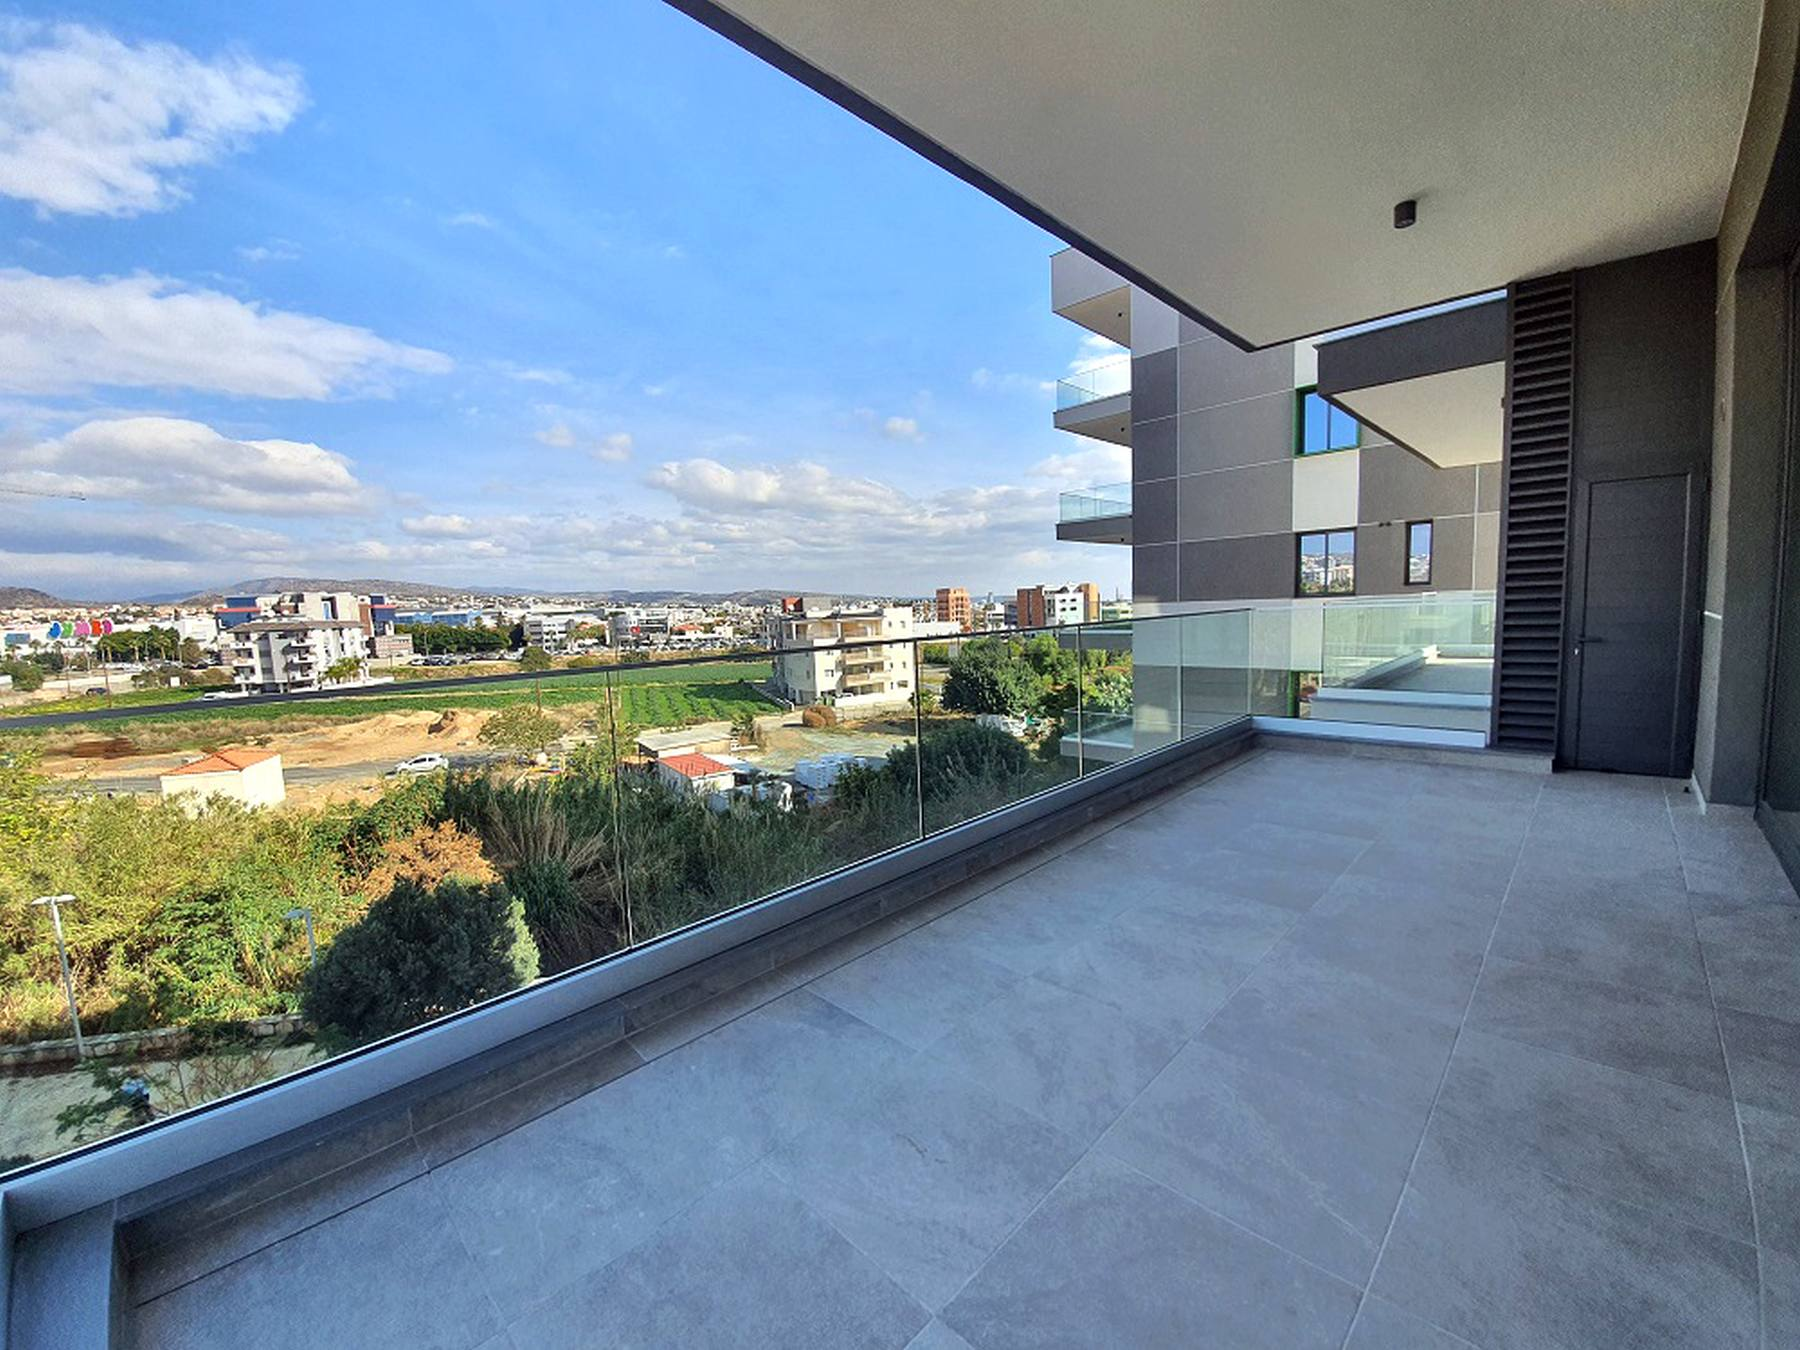 Apartment in a modern residential project in Limassol